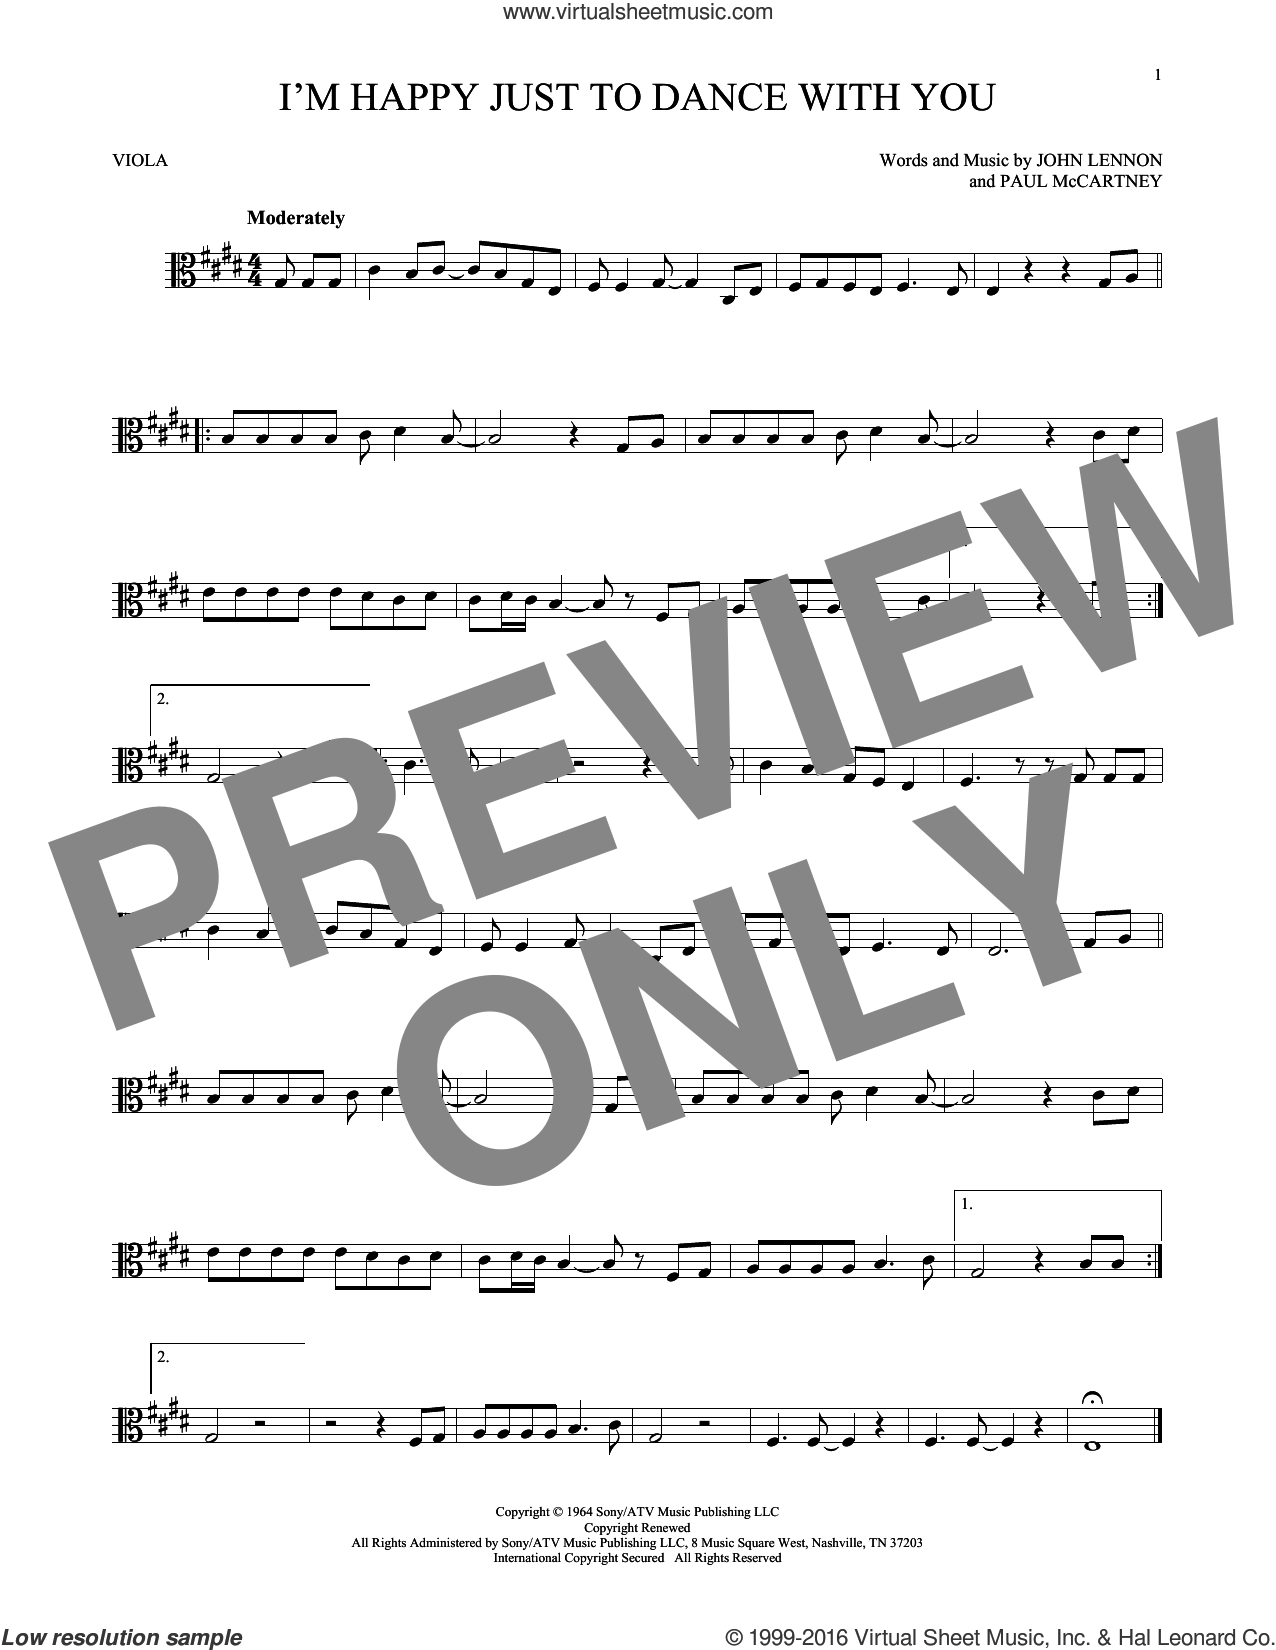 I'm Happy Just To Dance With You sheet music for viola solo by The Beatles, John Lennon and Paul McCartney, intermediate skill level